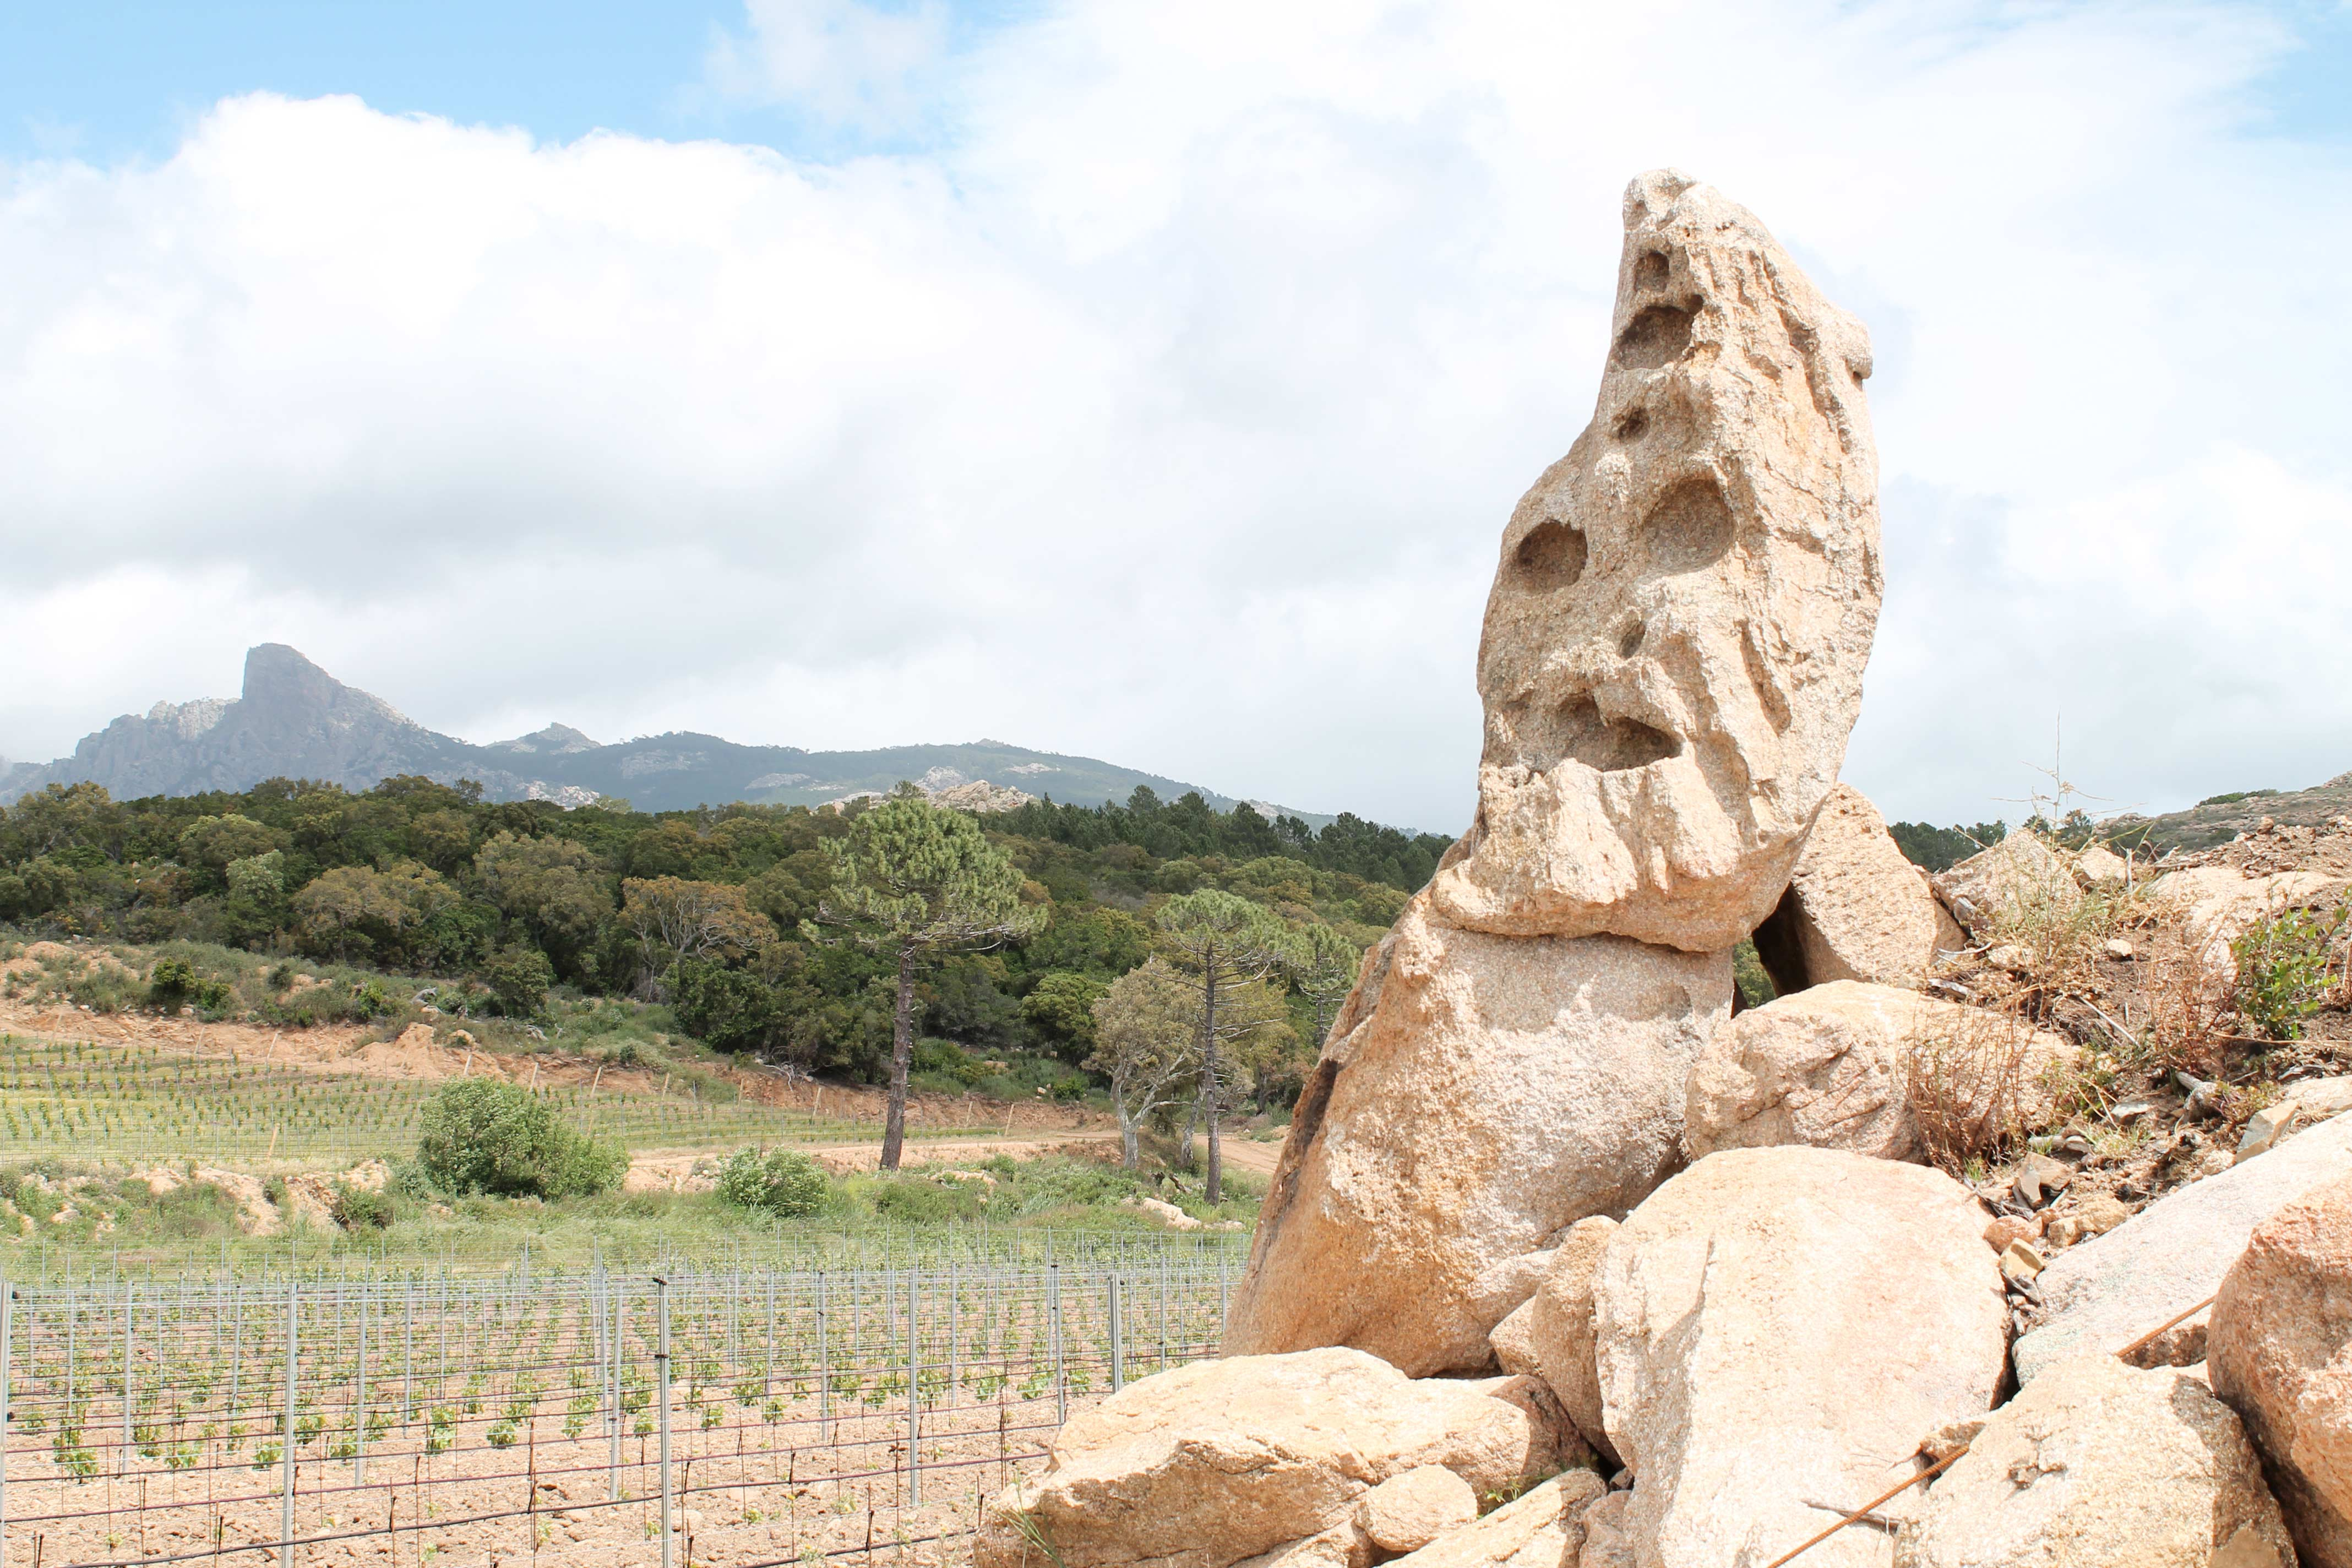 Corsica wine tour, strange outcrop near vineyard